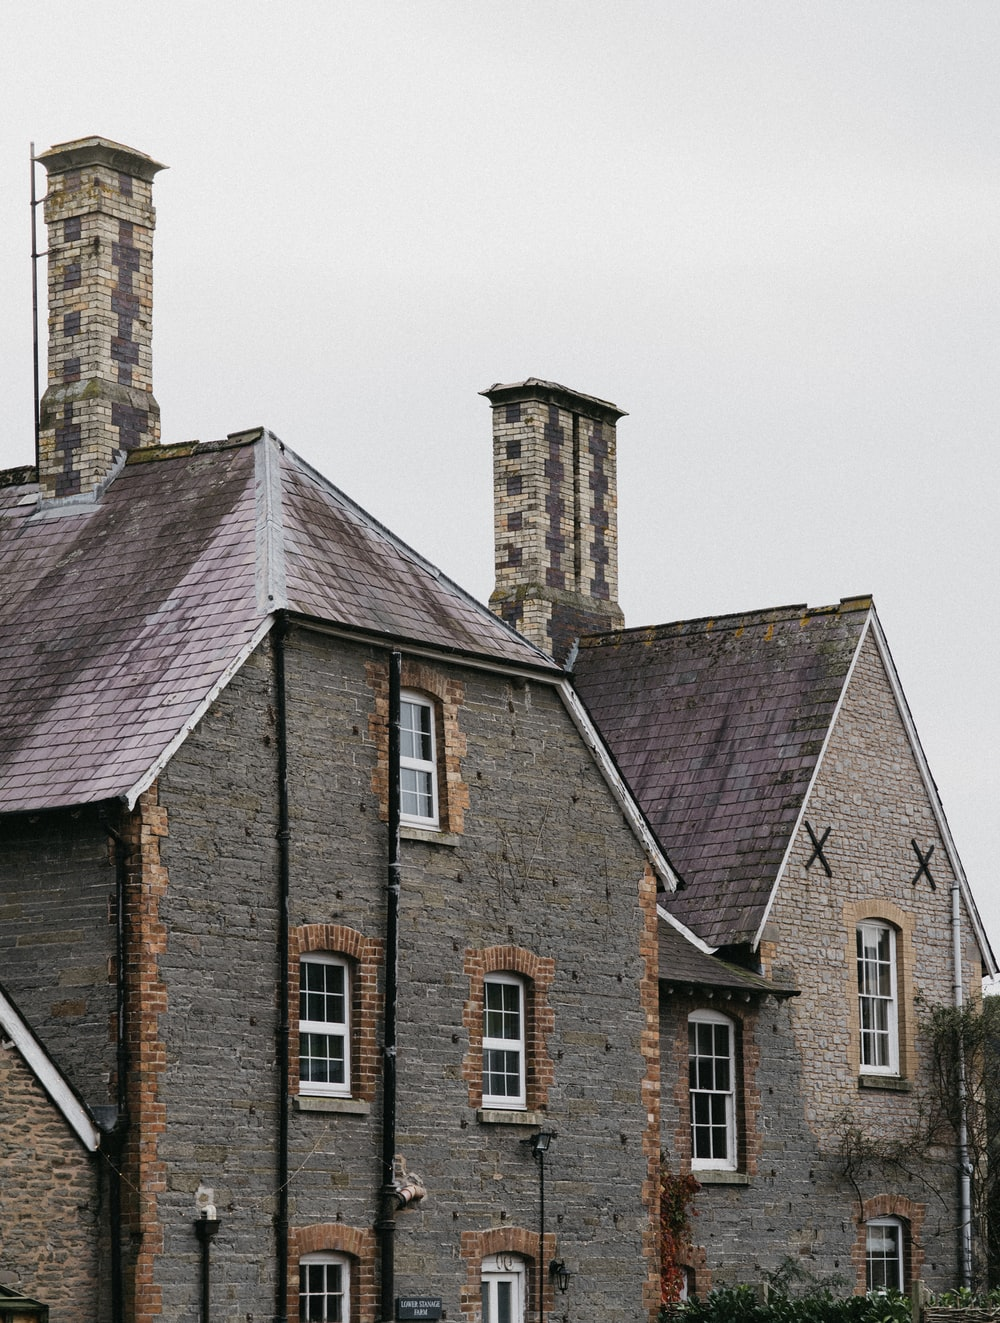 two gray stone houses